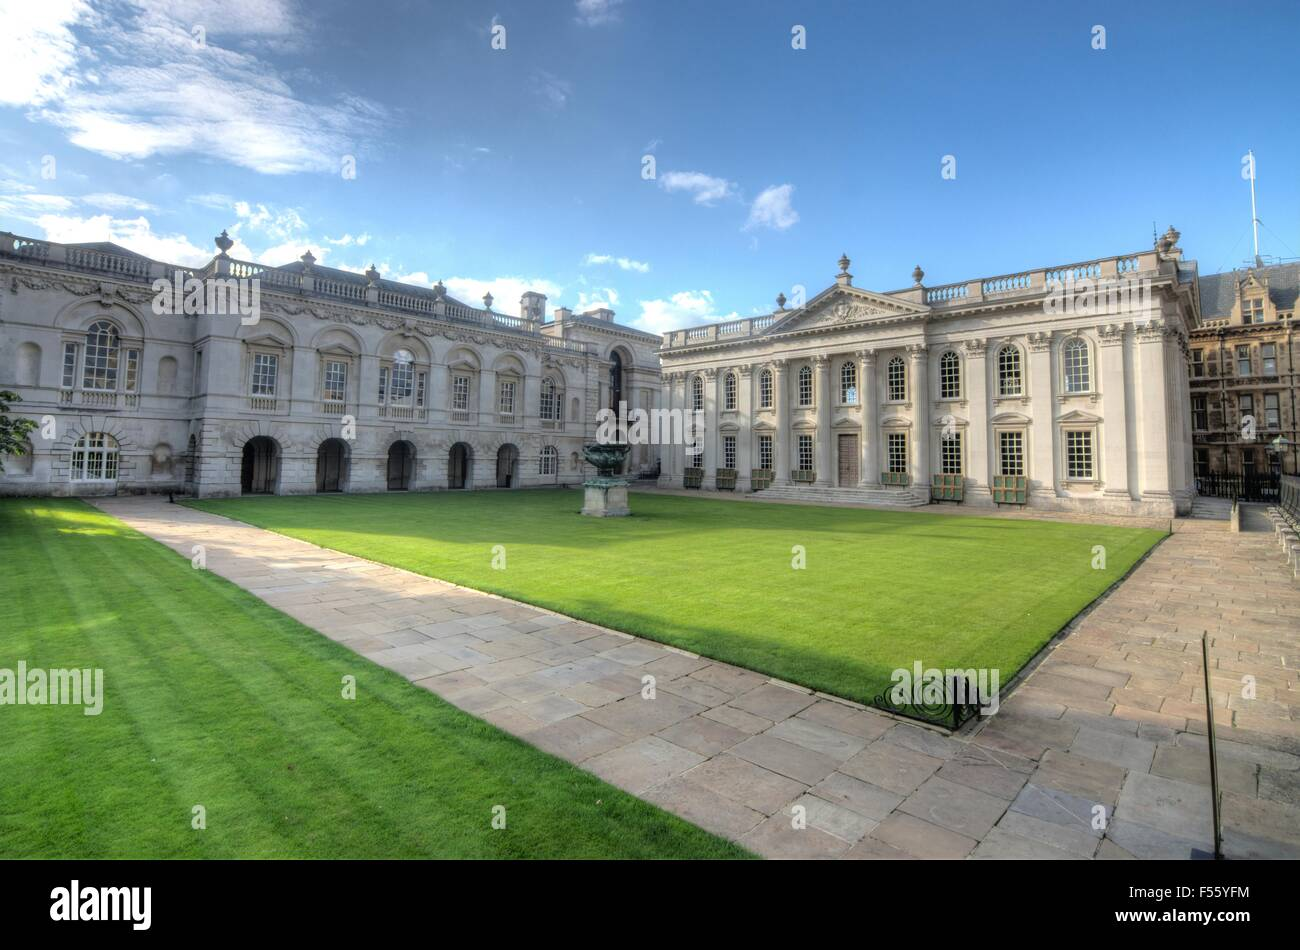 Christ's College Cambridge - Stock Image